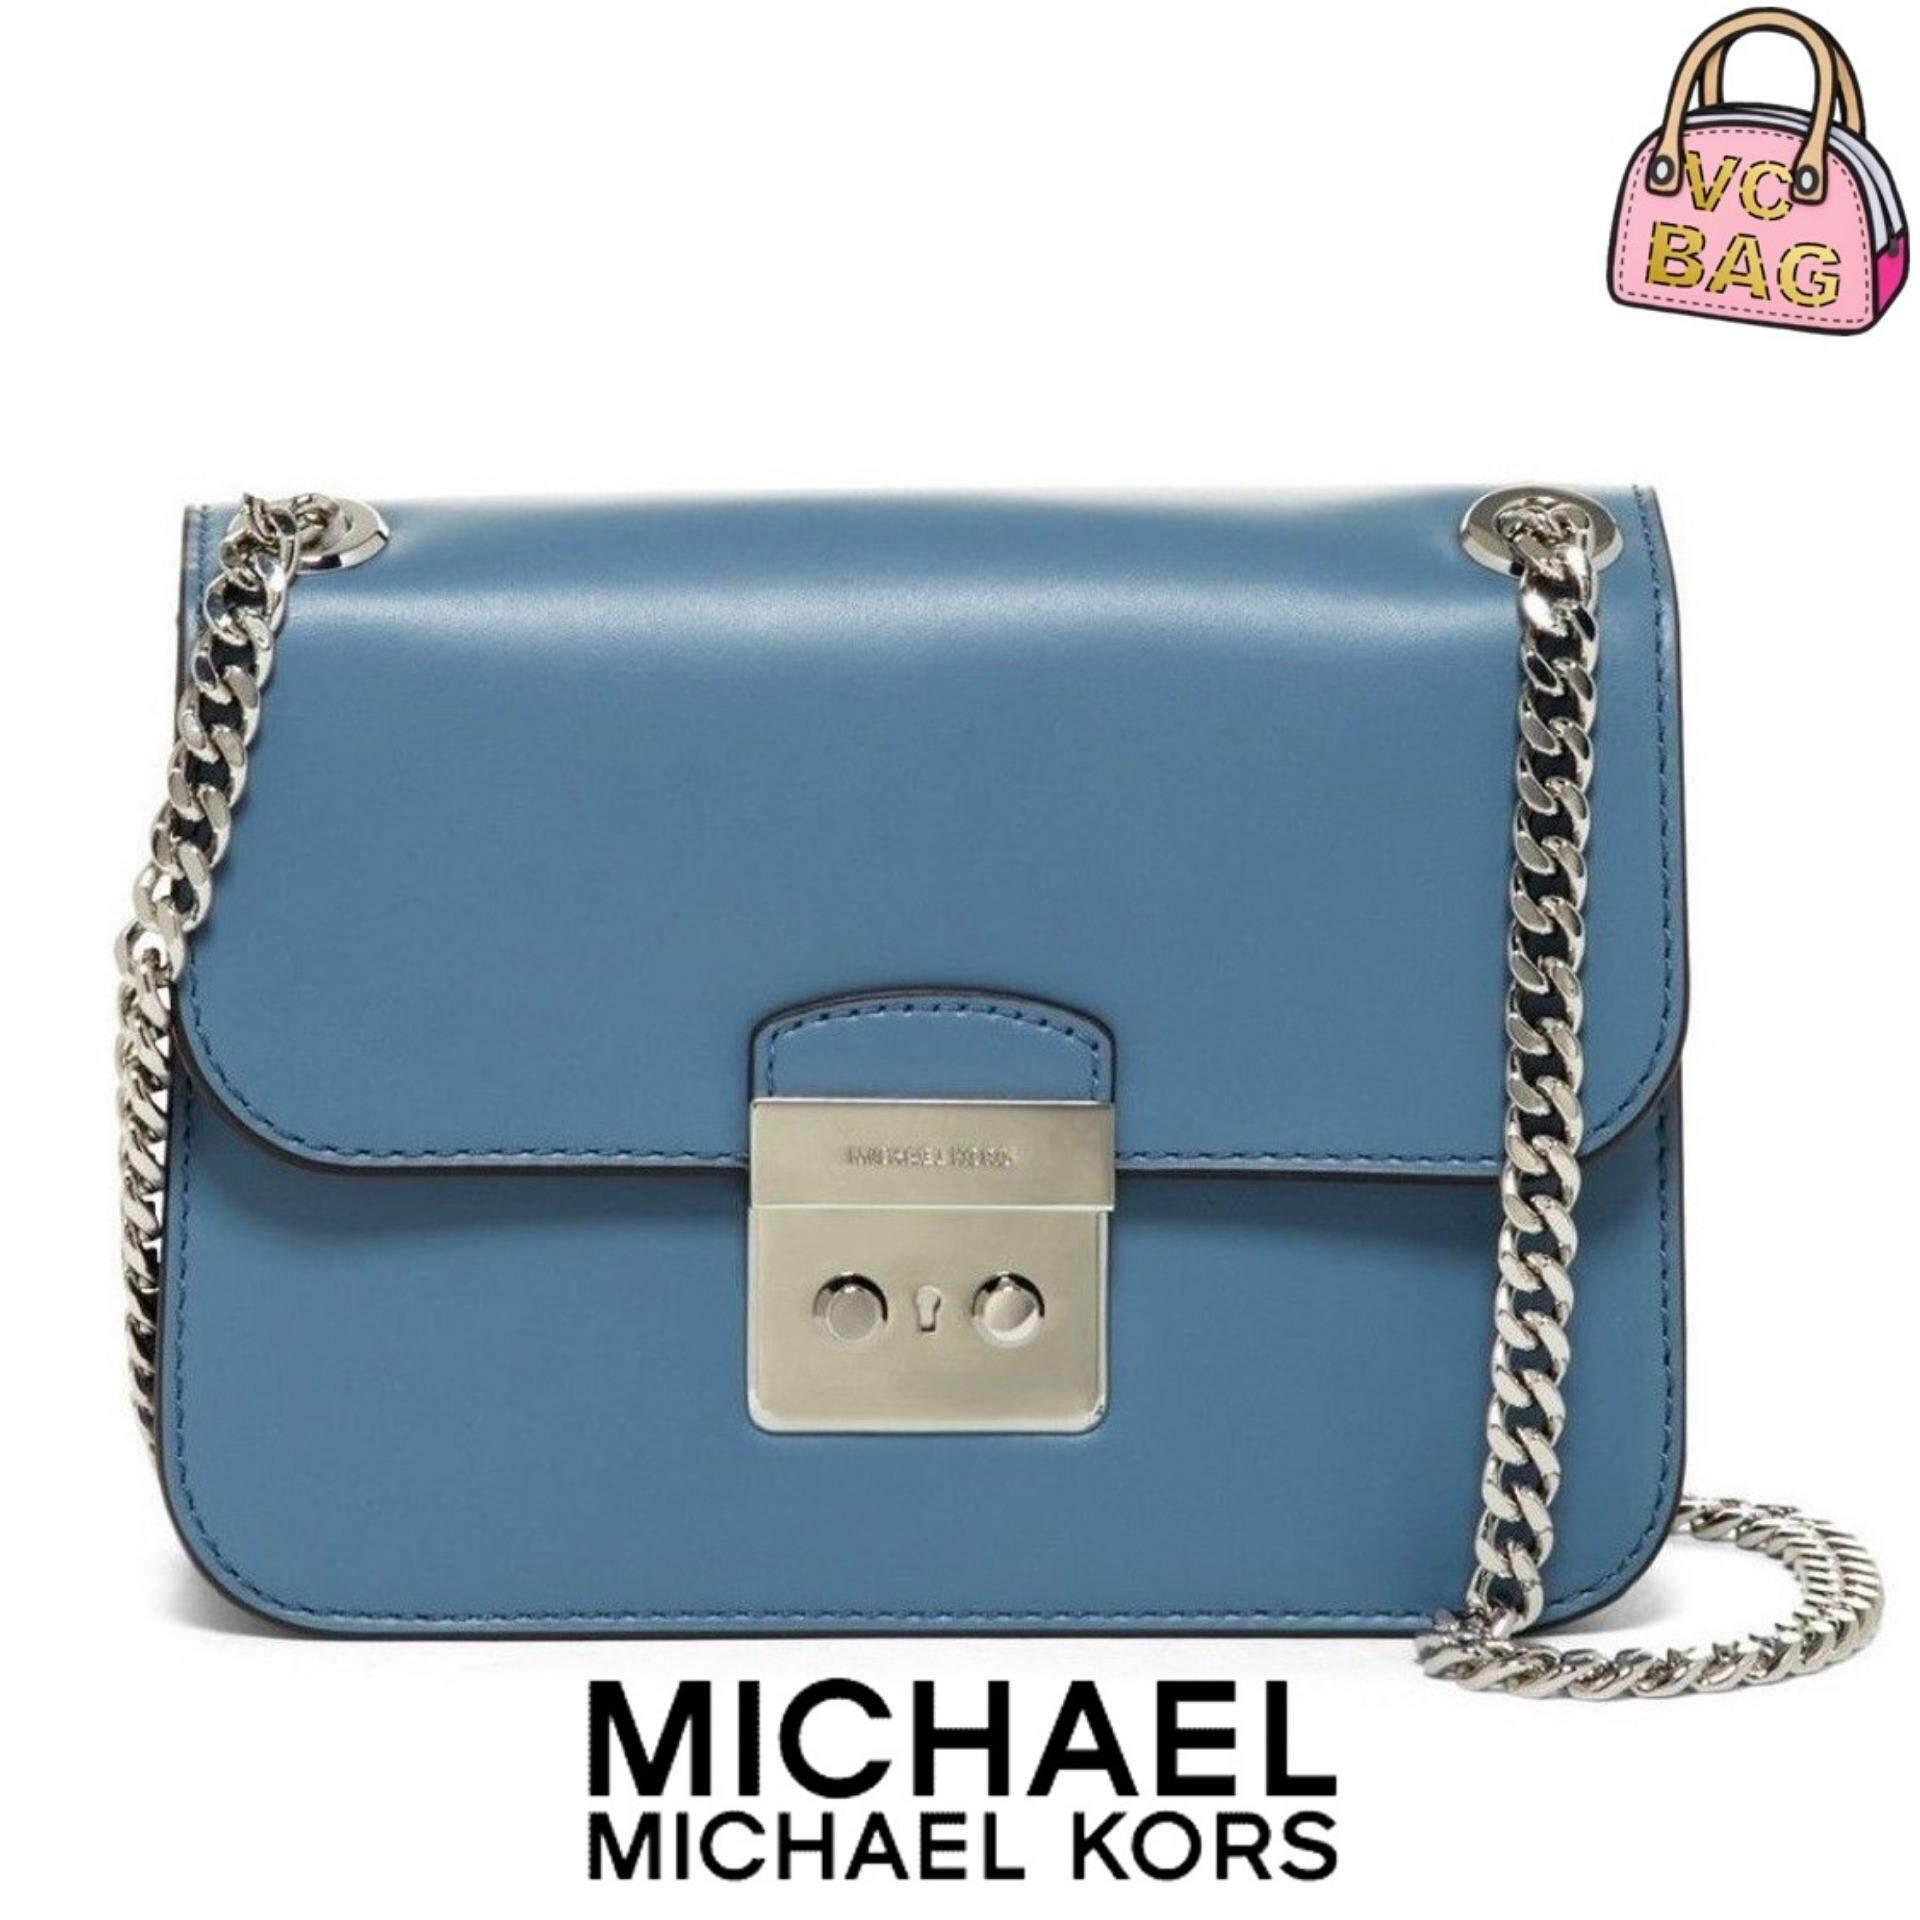 5bde3c5fb696 MICHAEL KORS Sloan Editor Small Chain Shoulder Bag [Denim]